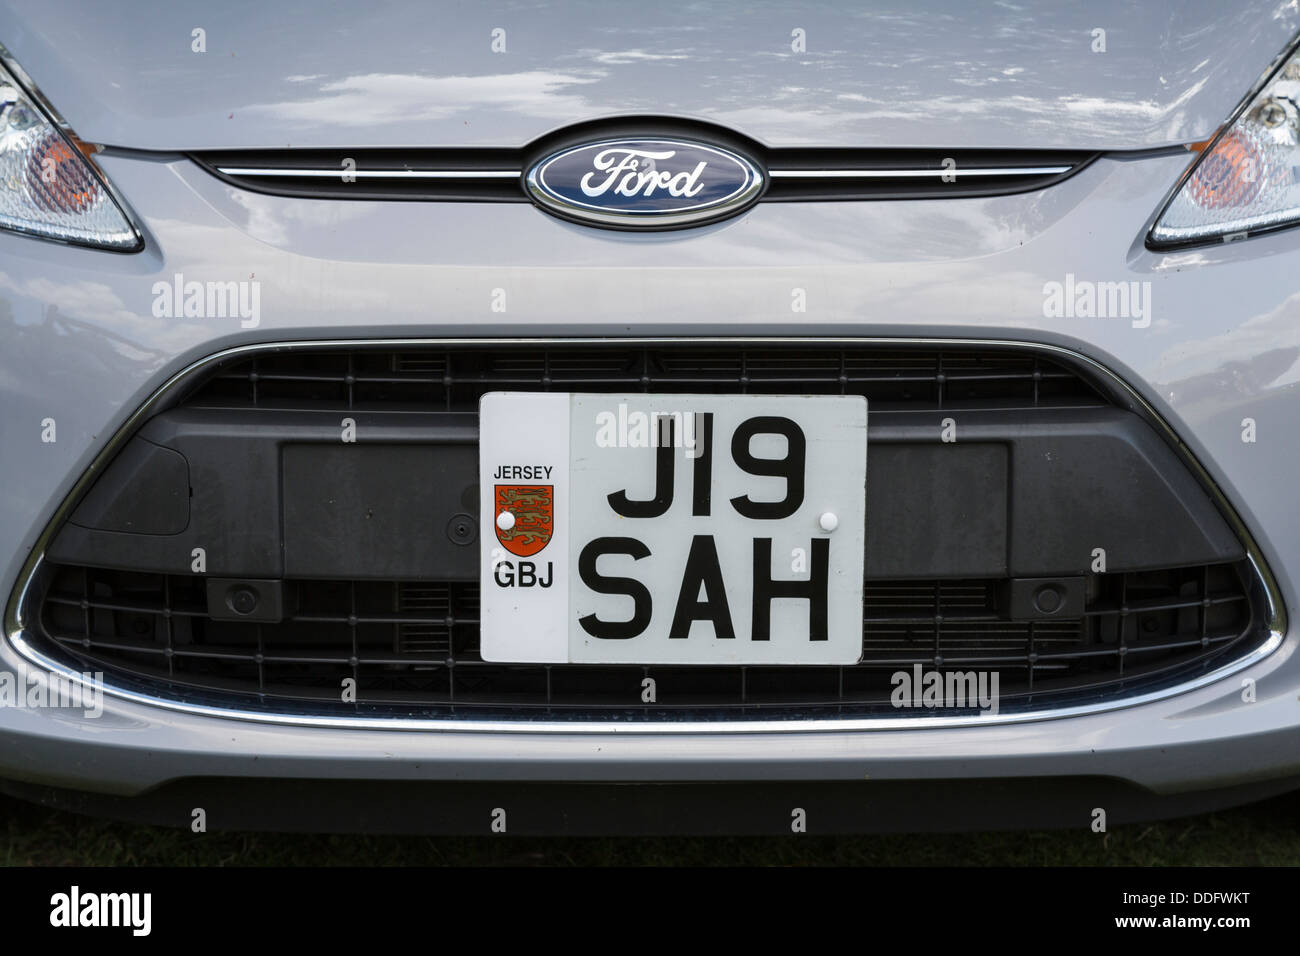 Jersey registration plate on a private car - Stock Image